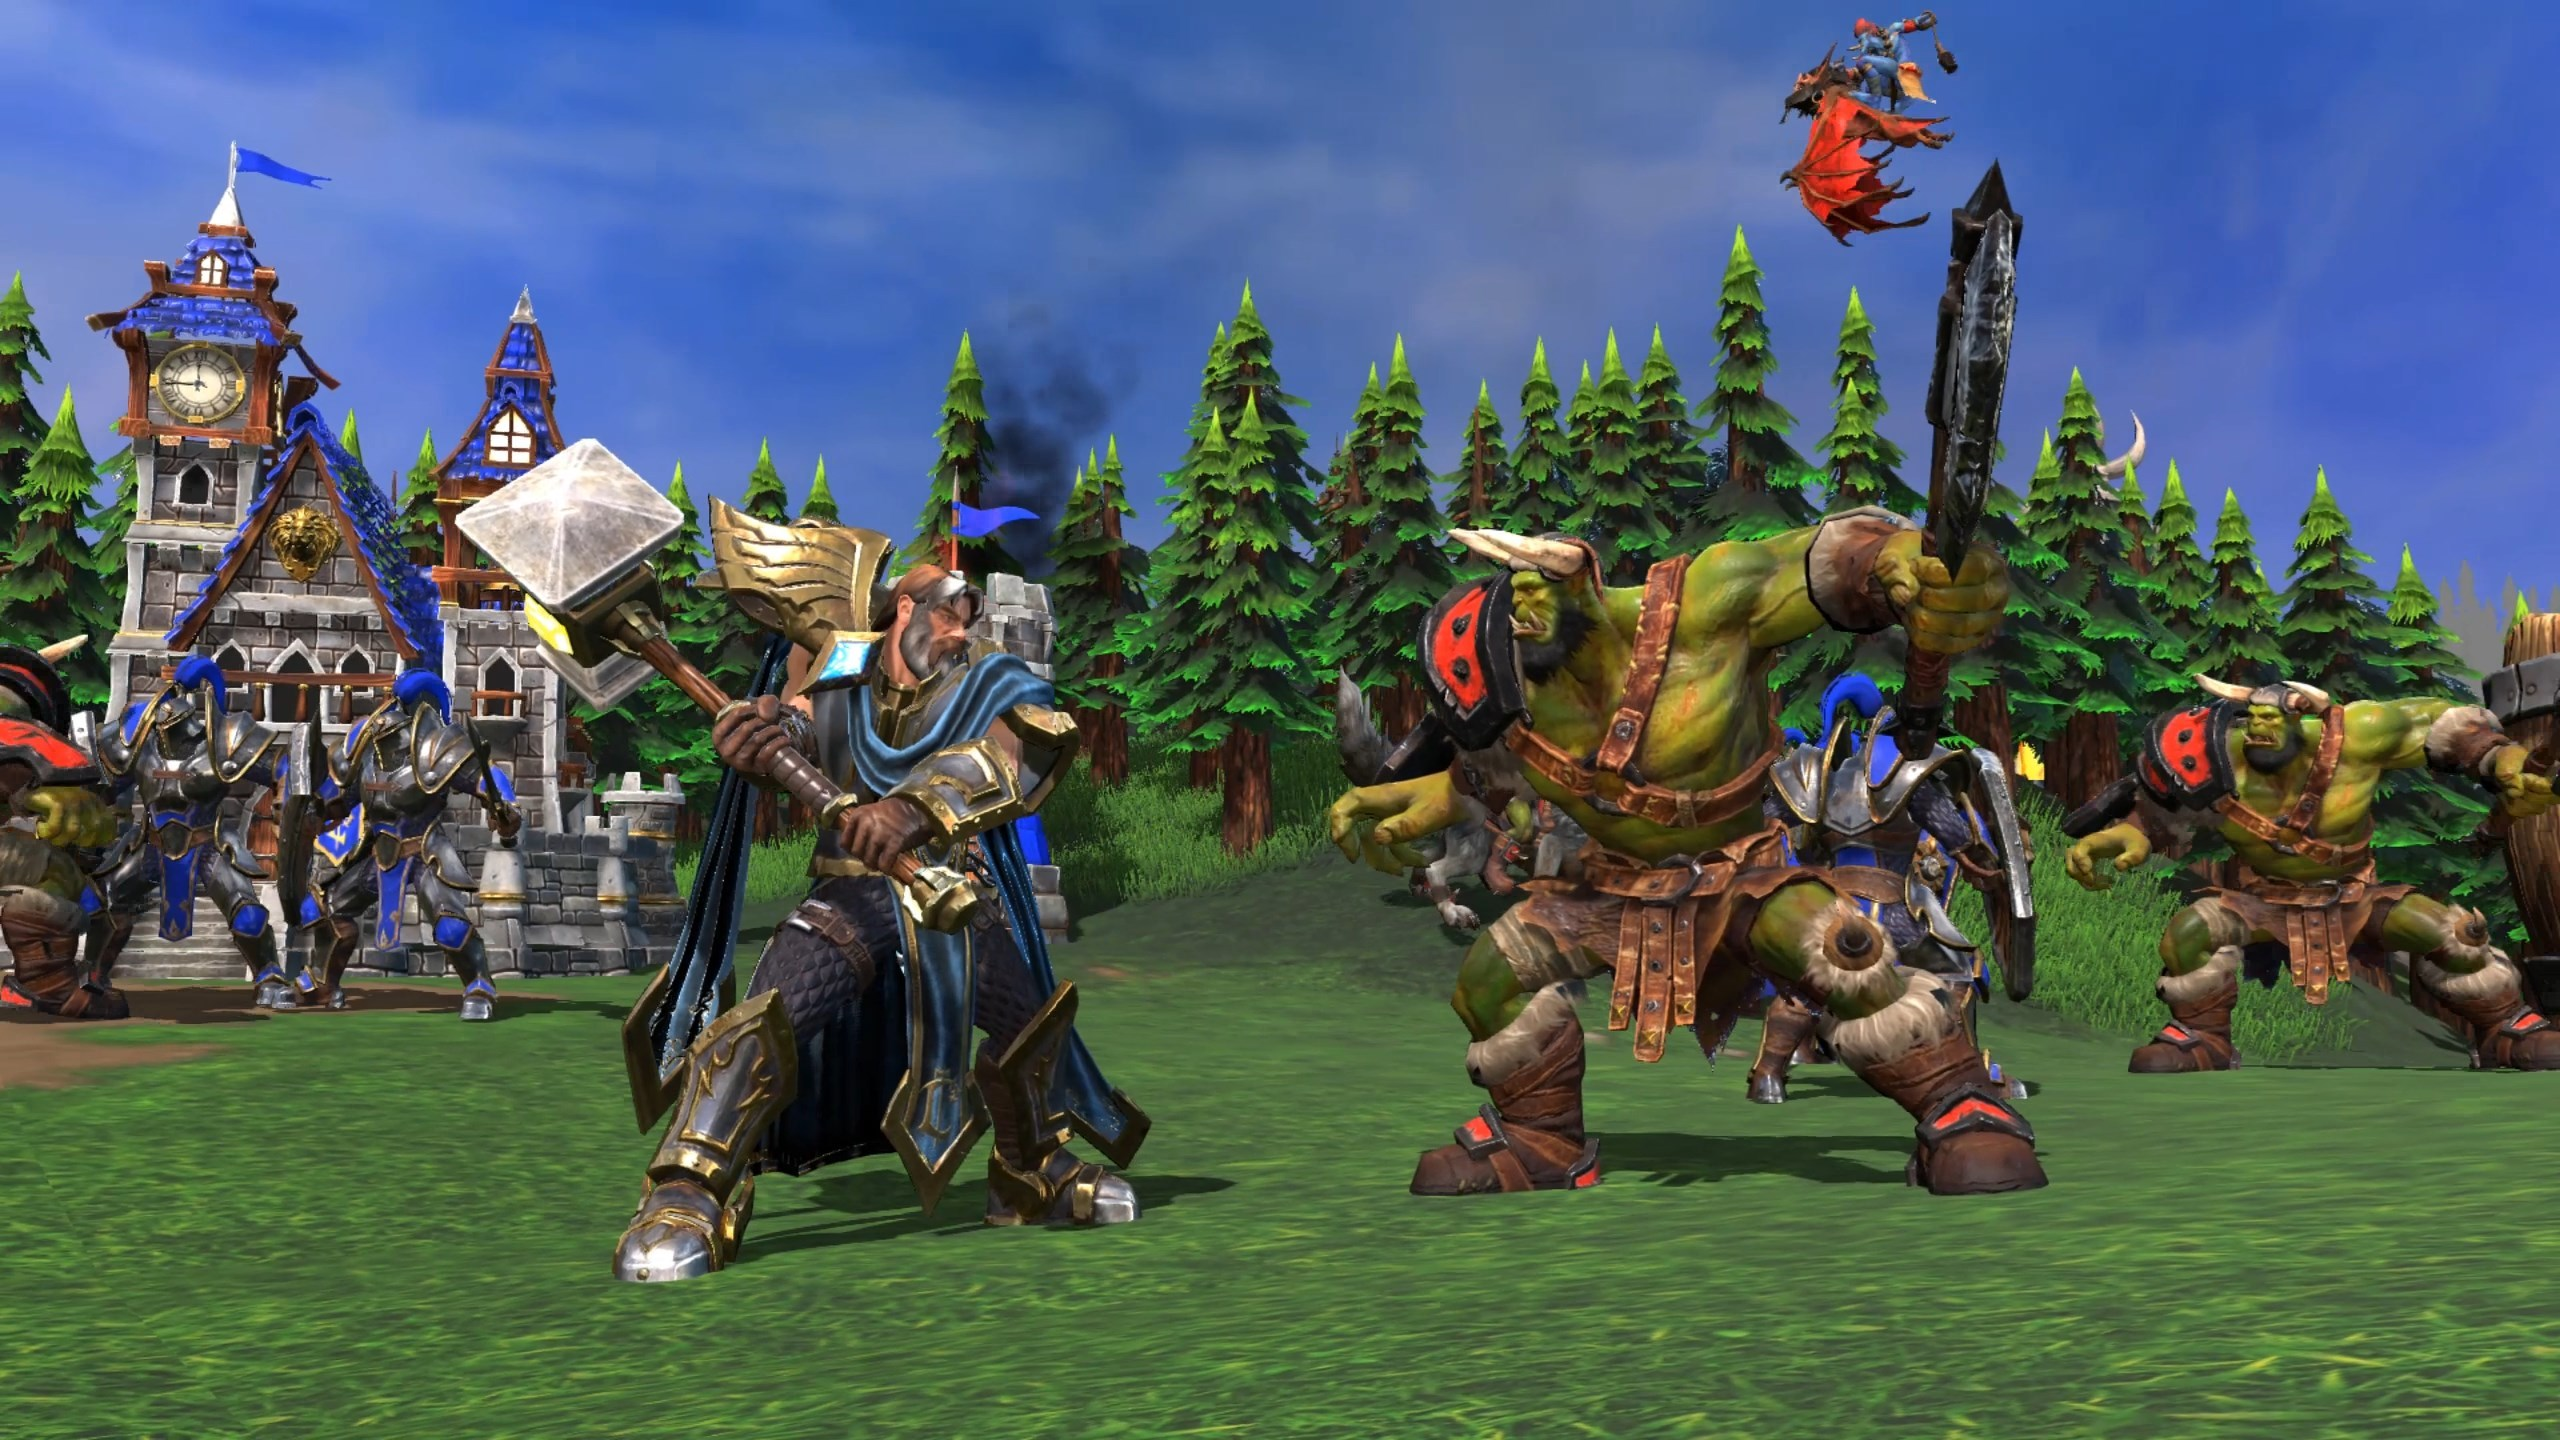 Warcraft Iii Reforged Gets Another Patch To Smooth Over Its Sins